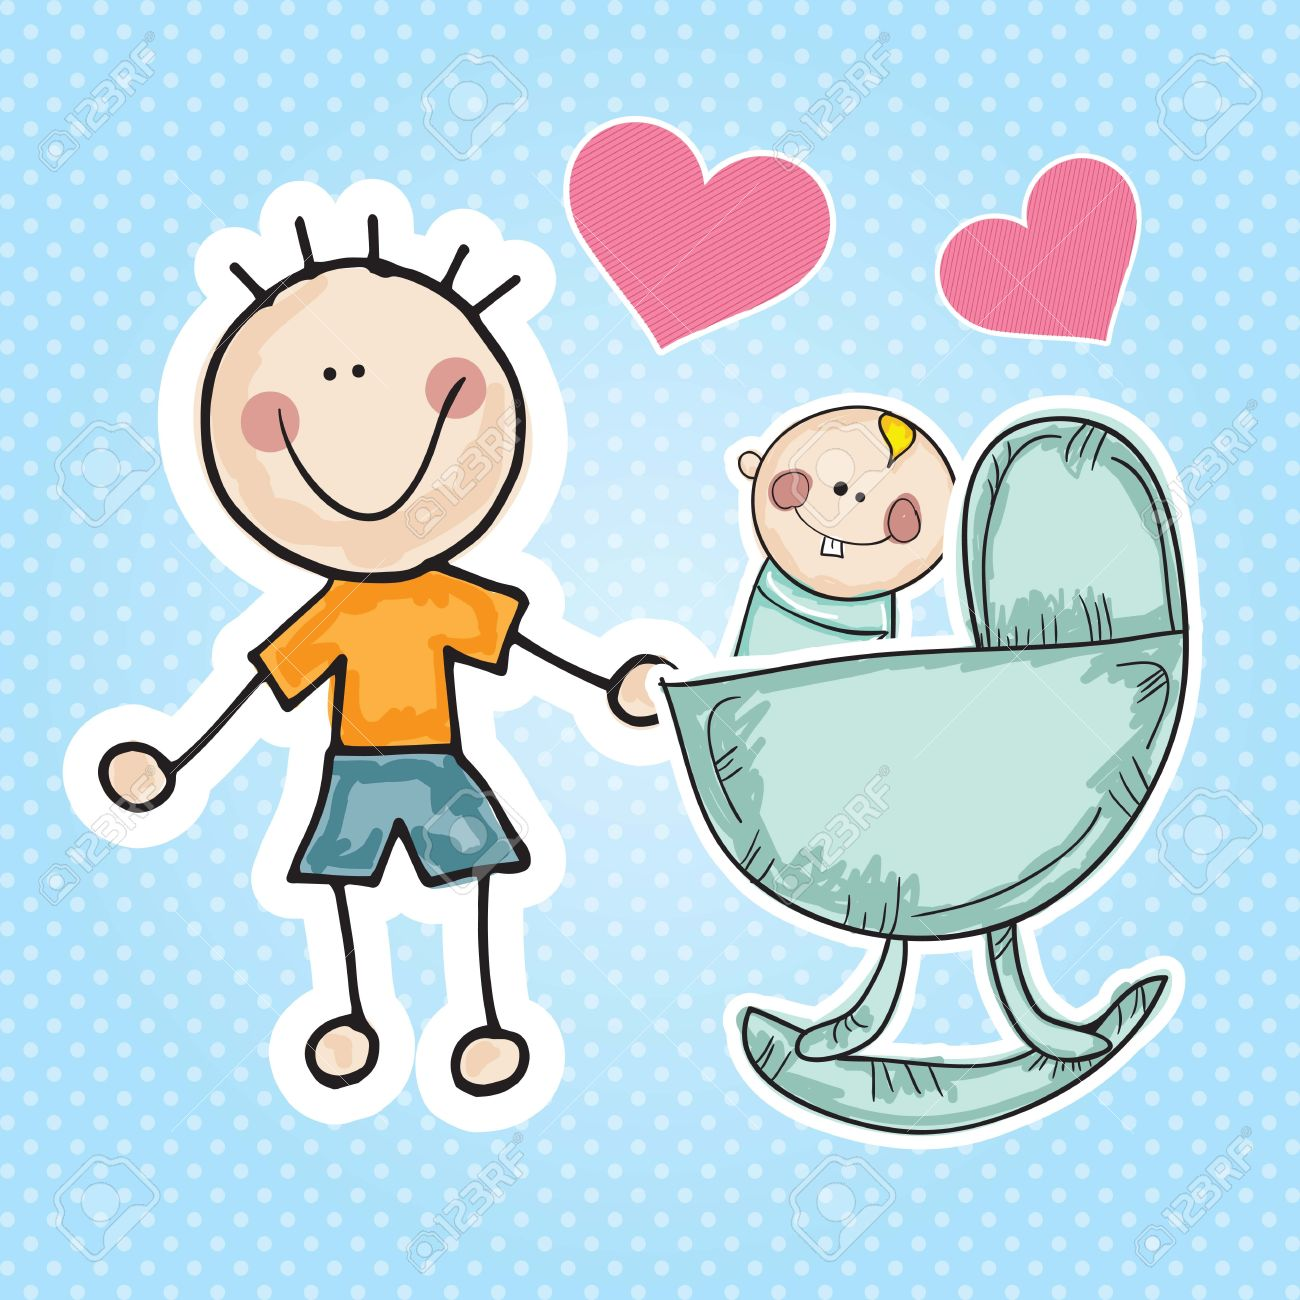 Taking care of baby clipart clip stock Father Taking Care Of Child Clipart & Free Clip Art Images ... clip stock